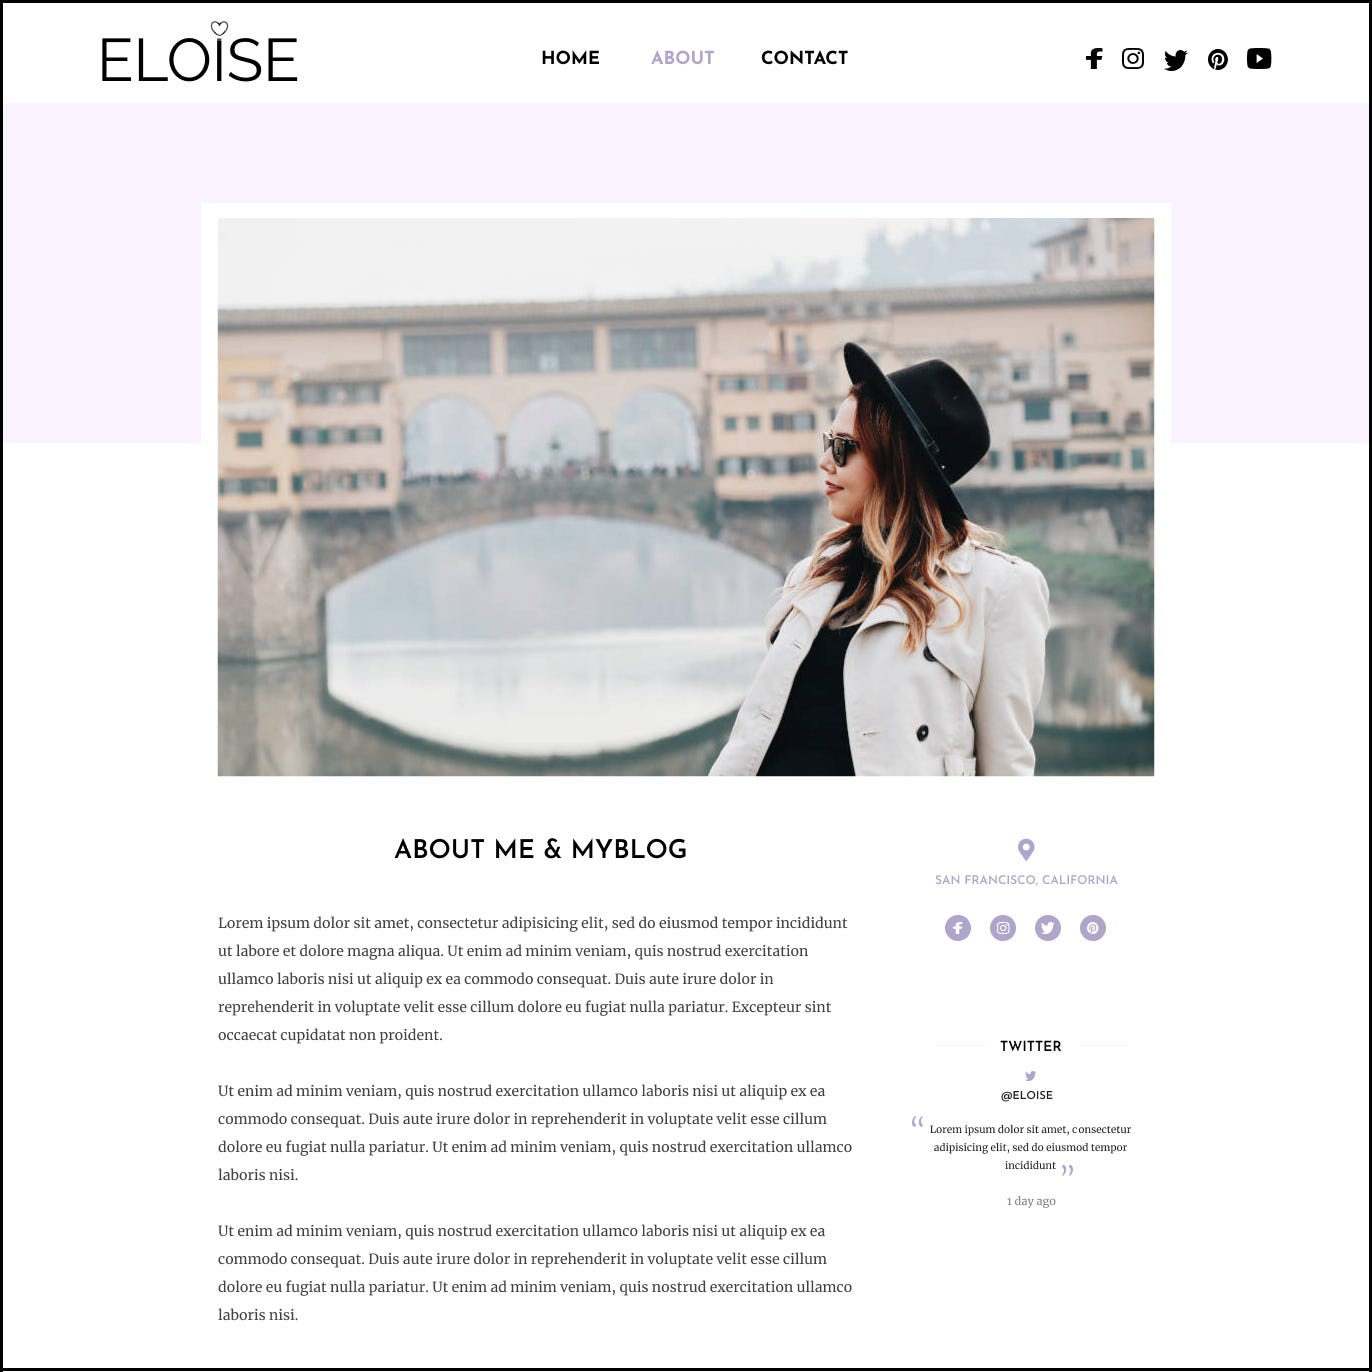 Blog page design. Image of a young lady in a bridge.